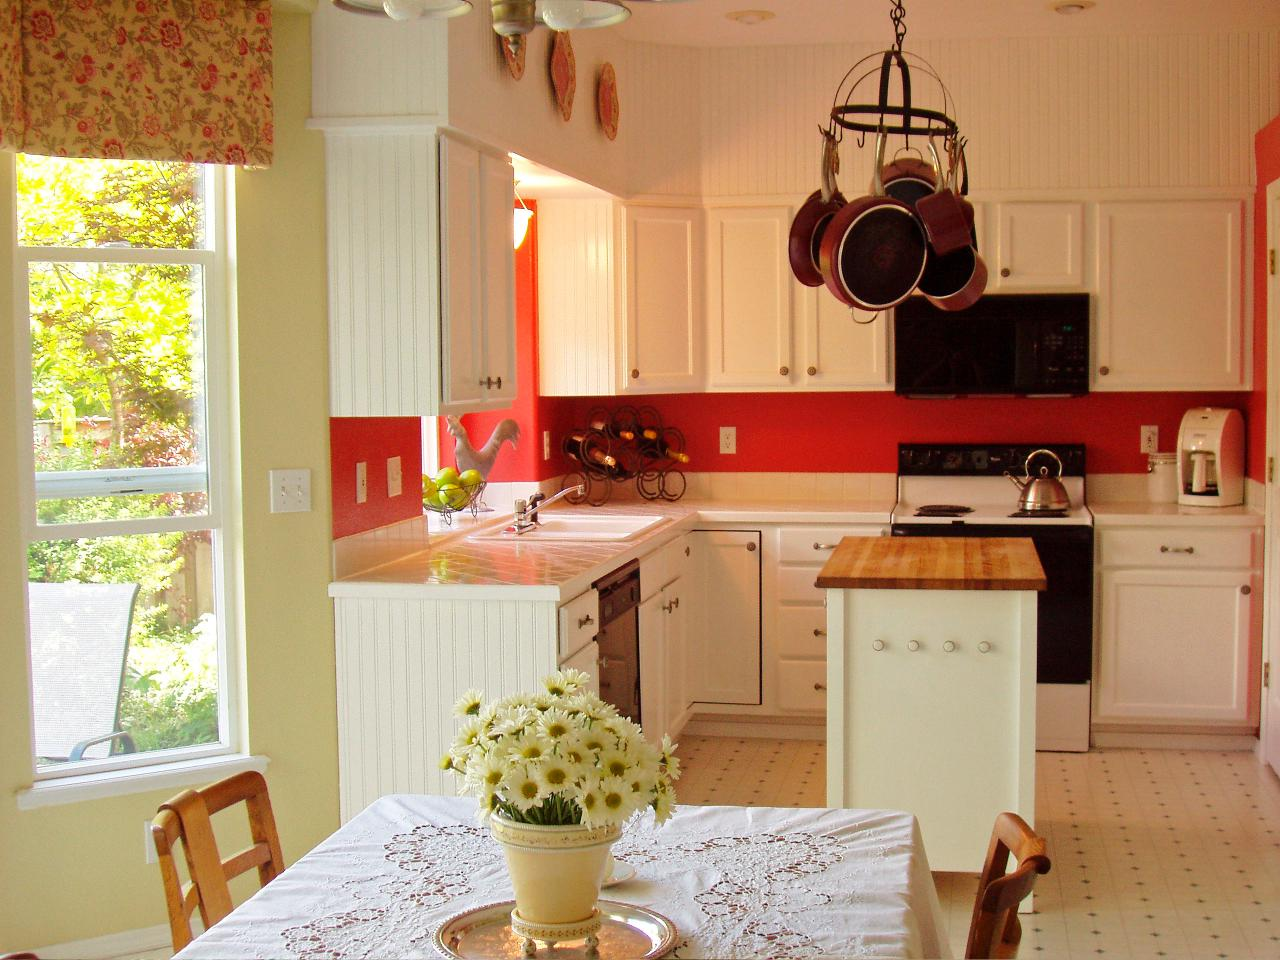 Kitchen color trends pictures ideas expert tips hgtv What color cabinets go with yellow walls